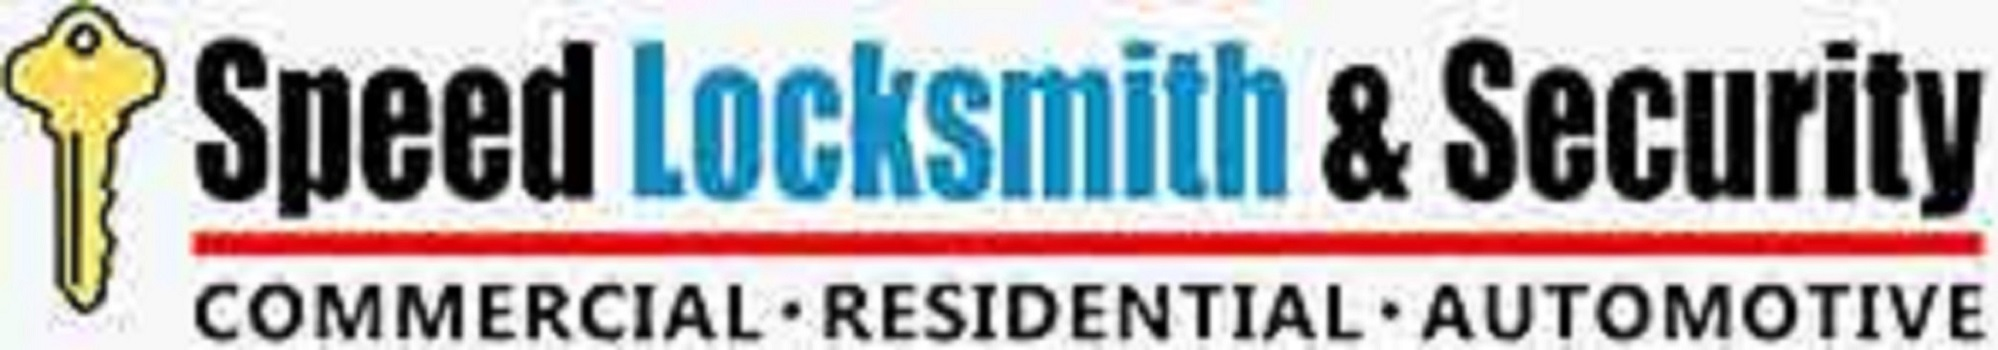 Speed Locksmith & Security, INC.